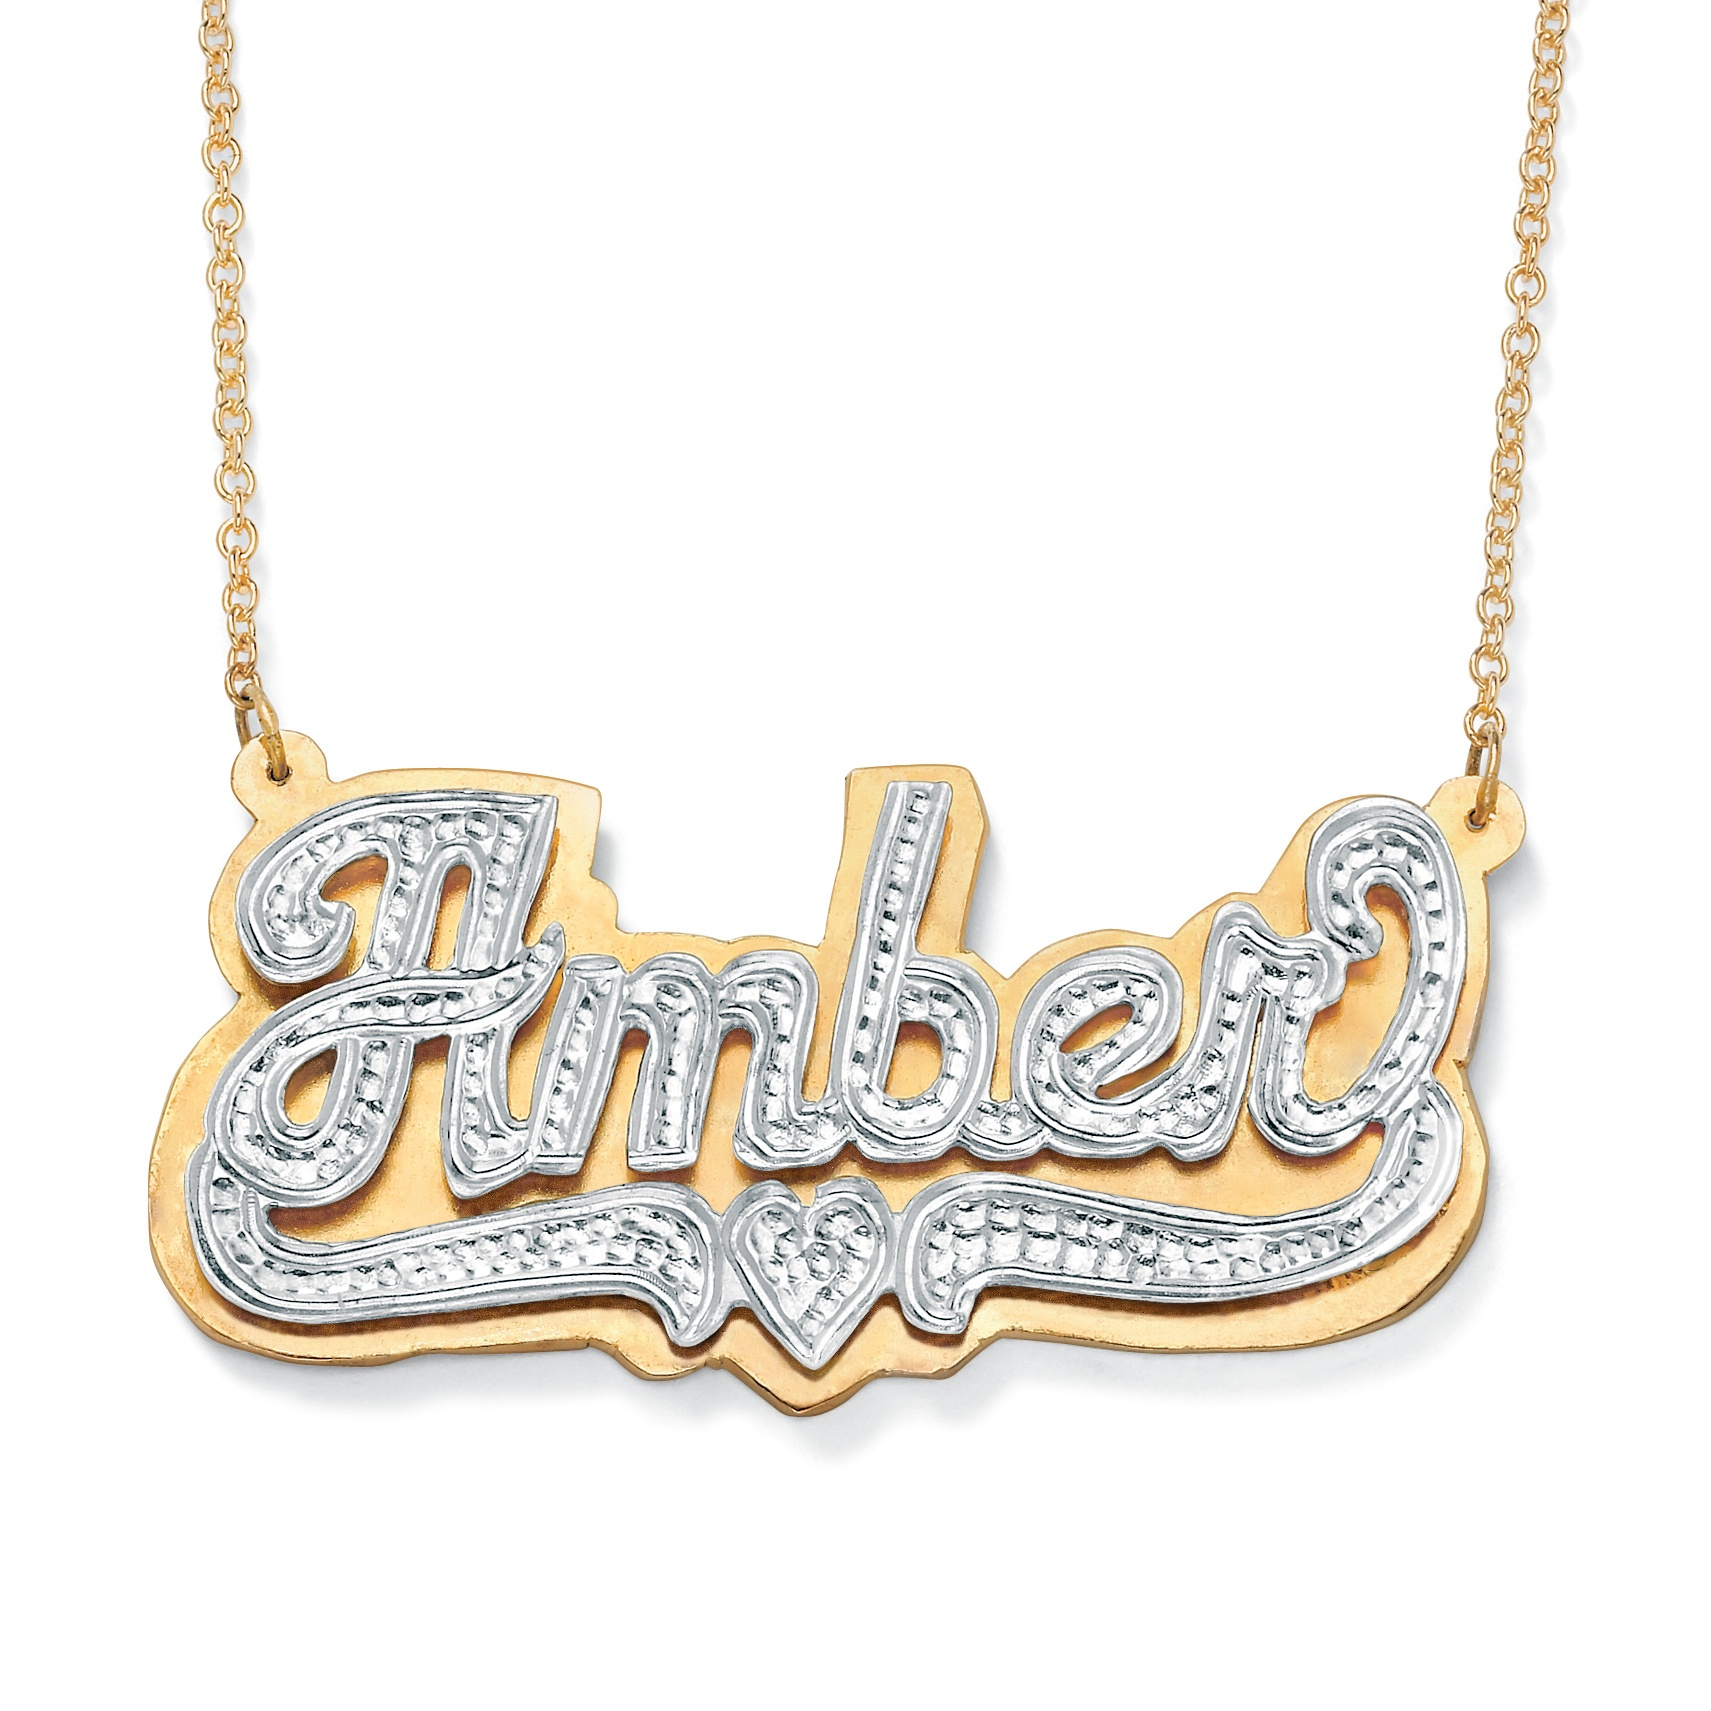 necklaces personalized top sellers save up to 63 page 1 of